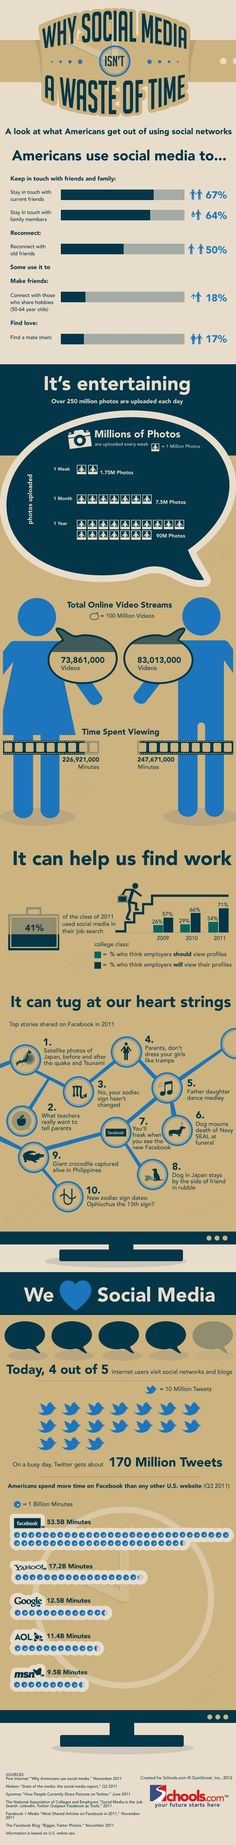 Why social media isn't a waste of time | Infographic by Schools.com